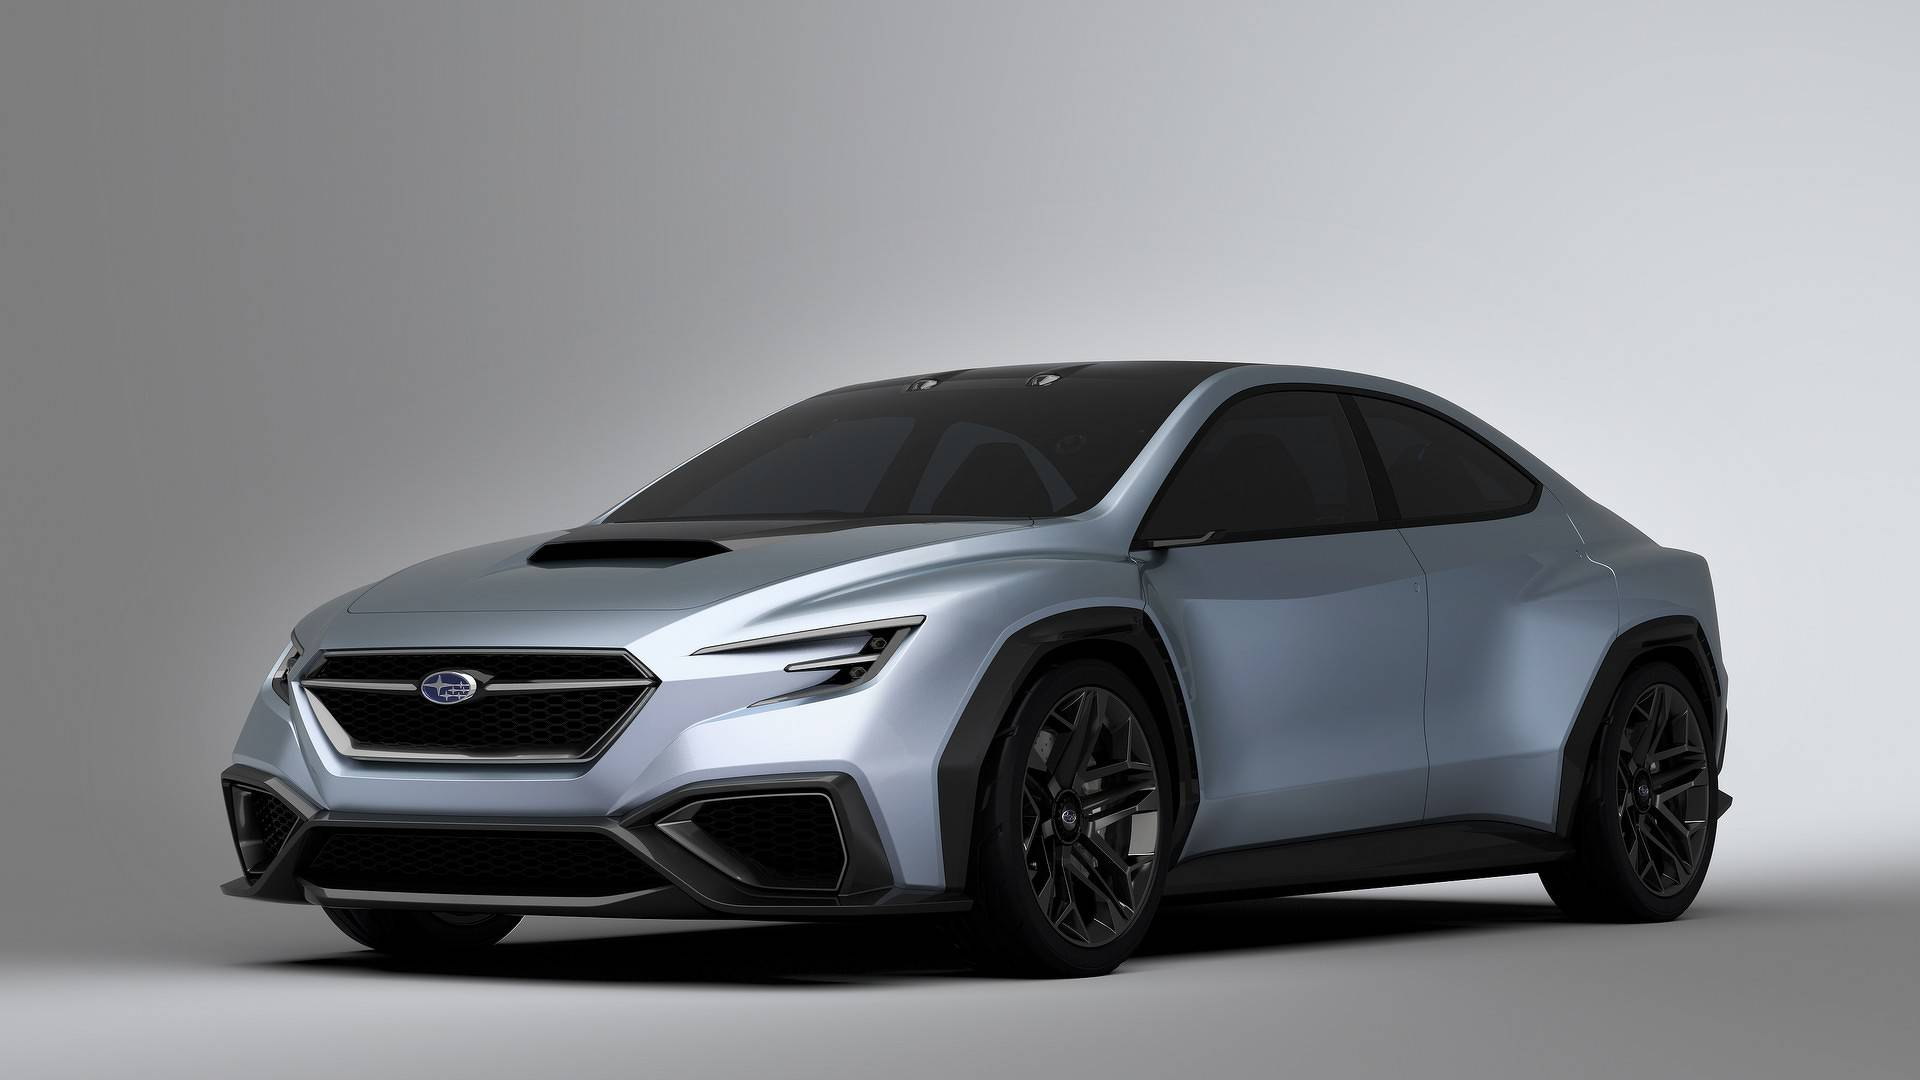 2018 Subaru Impreza WRX STI Rendered as a Hatchback ...